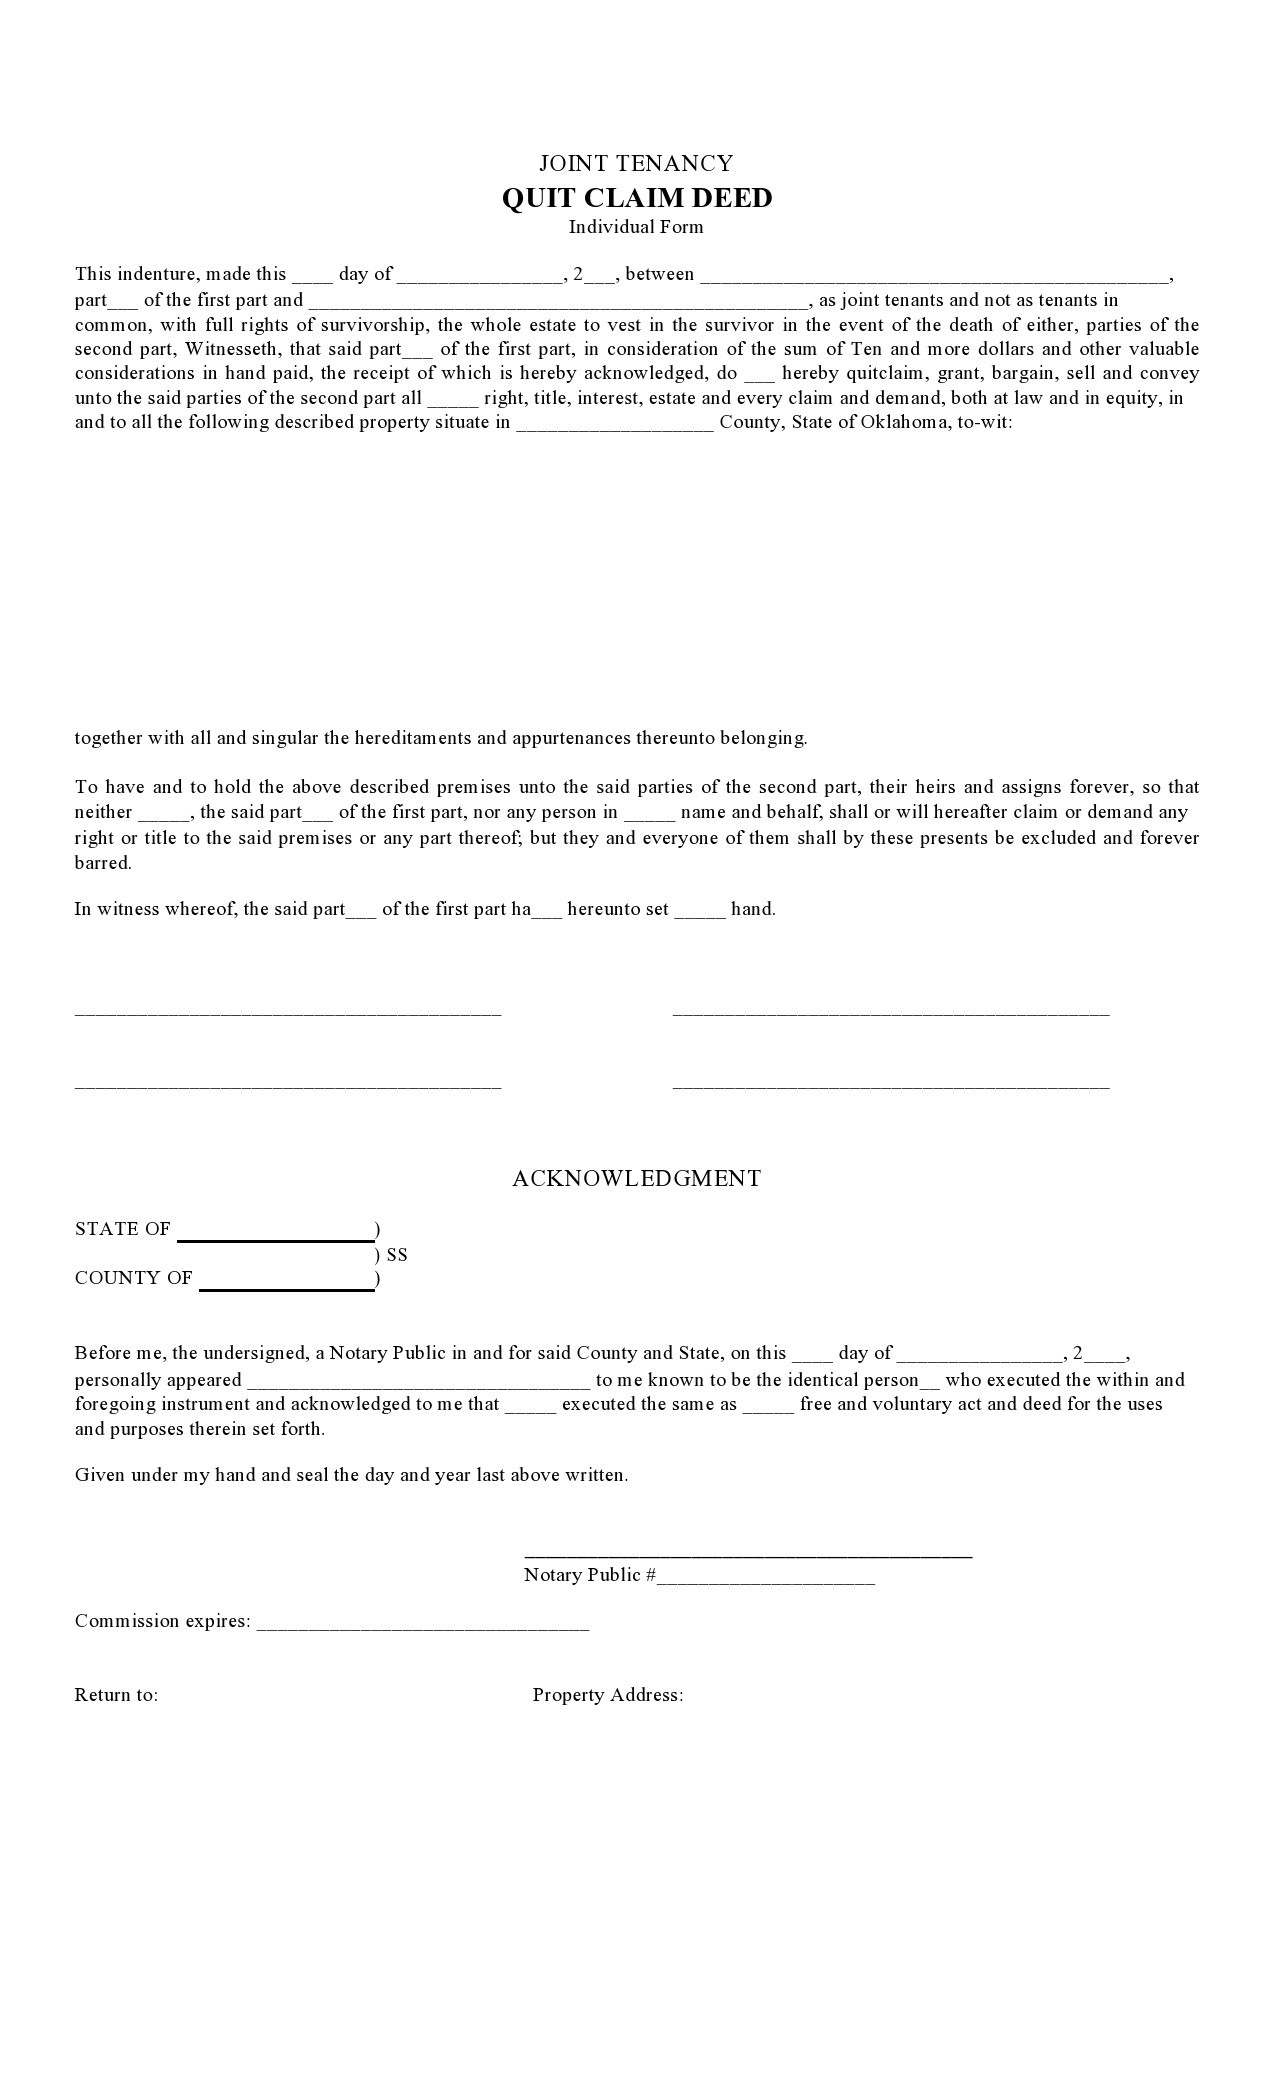 Free quit claim deed form 31